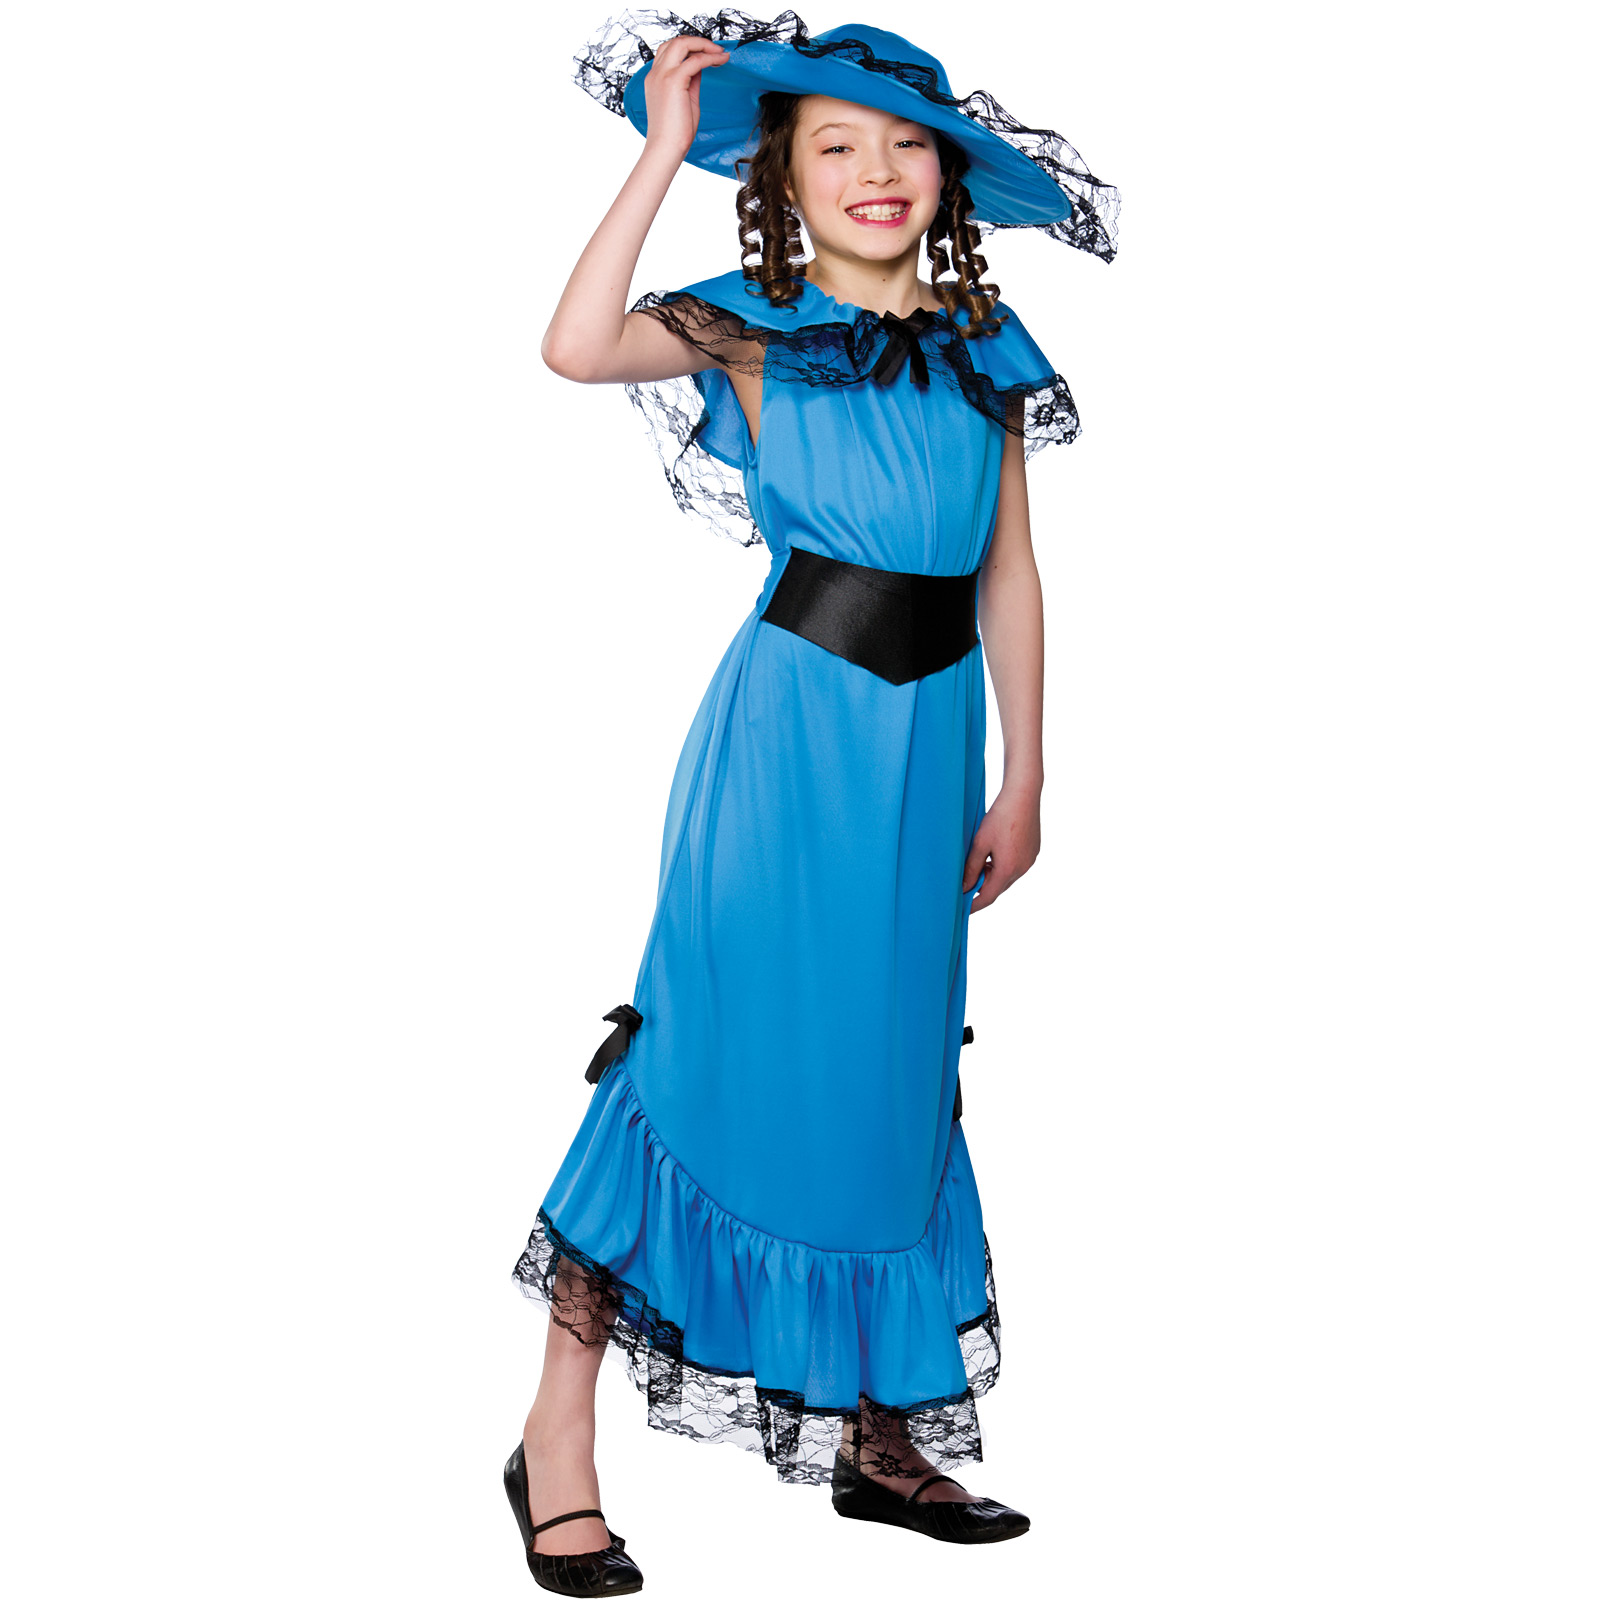 Child-Girls-Victorian-Lady-Blue-Costume-Fancy-Dress-Up-Role-Play-Party-Halloween